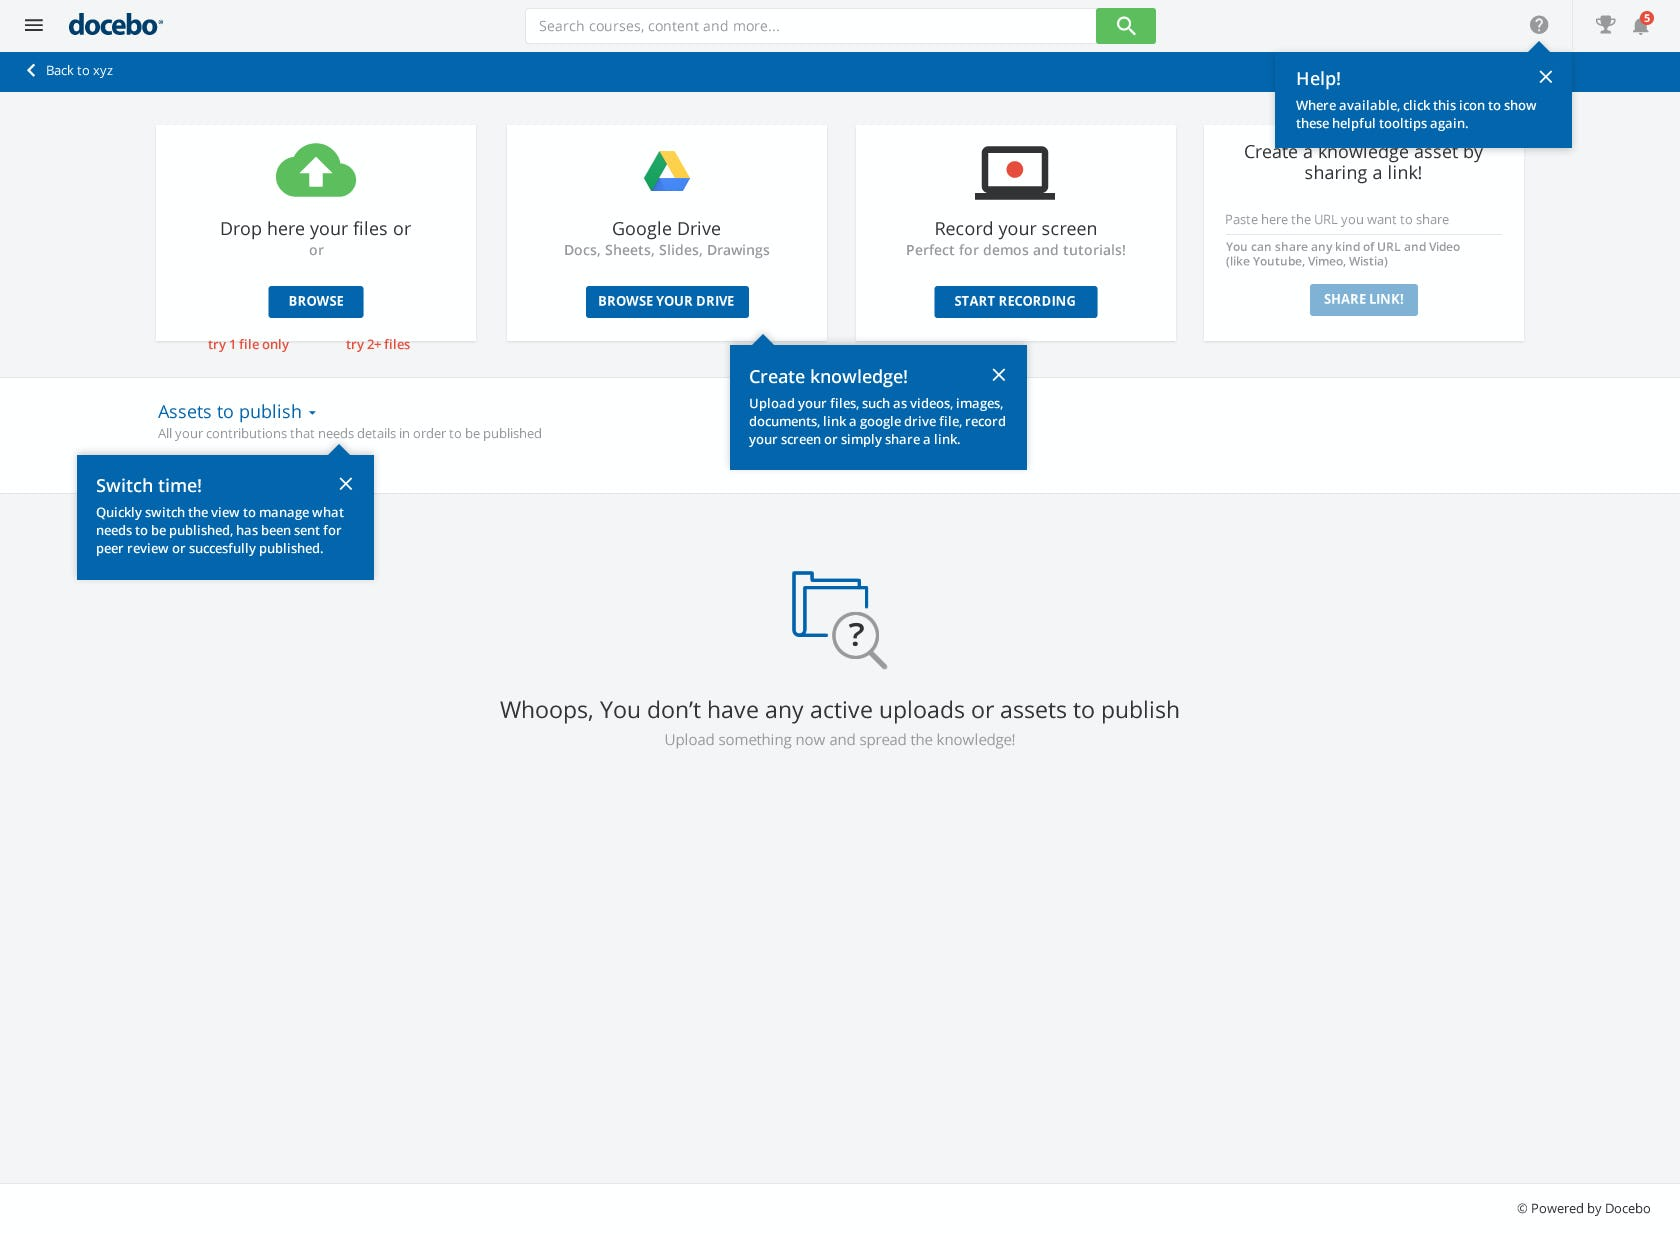 Docebo Software - Contribute UGC